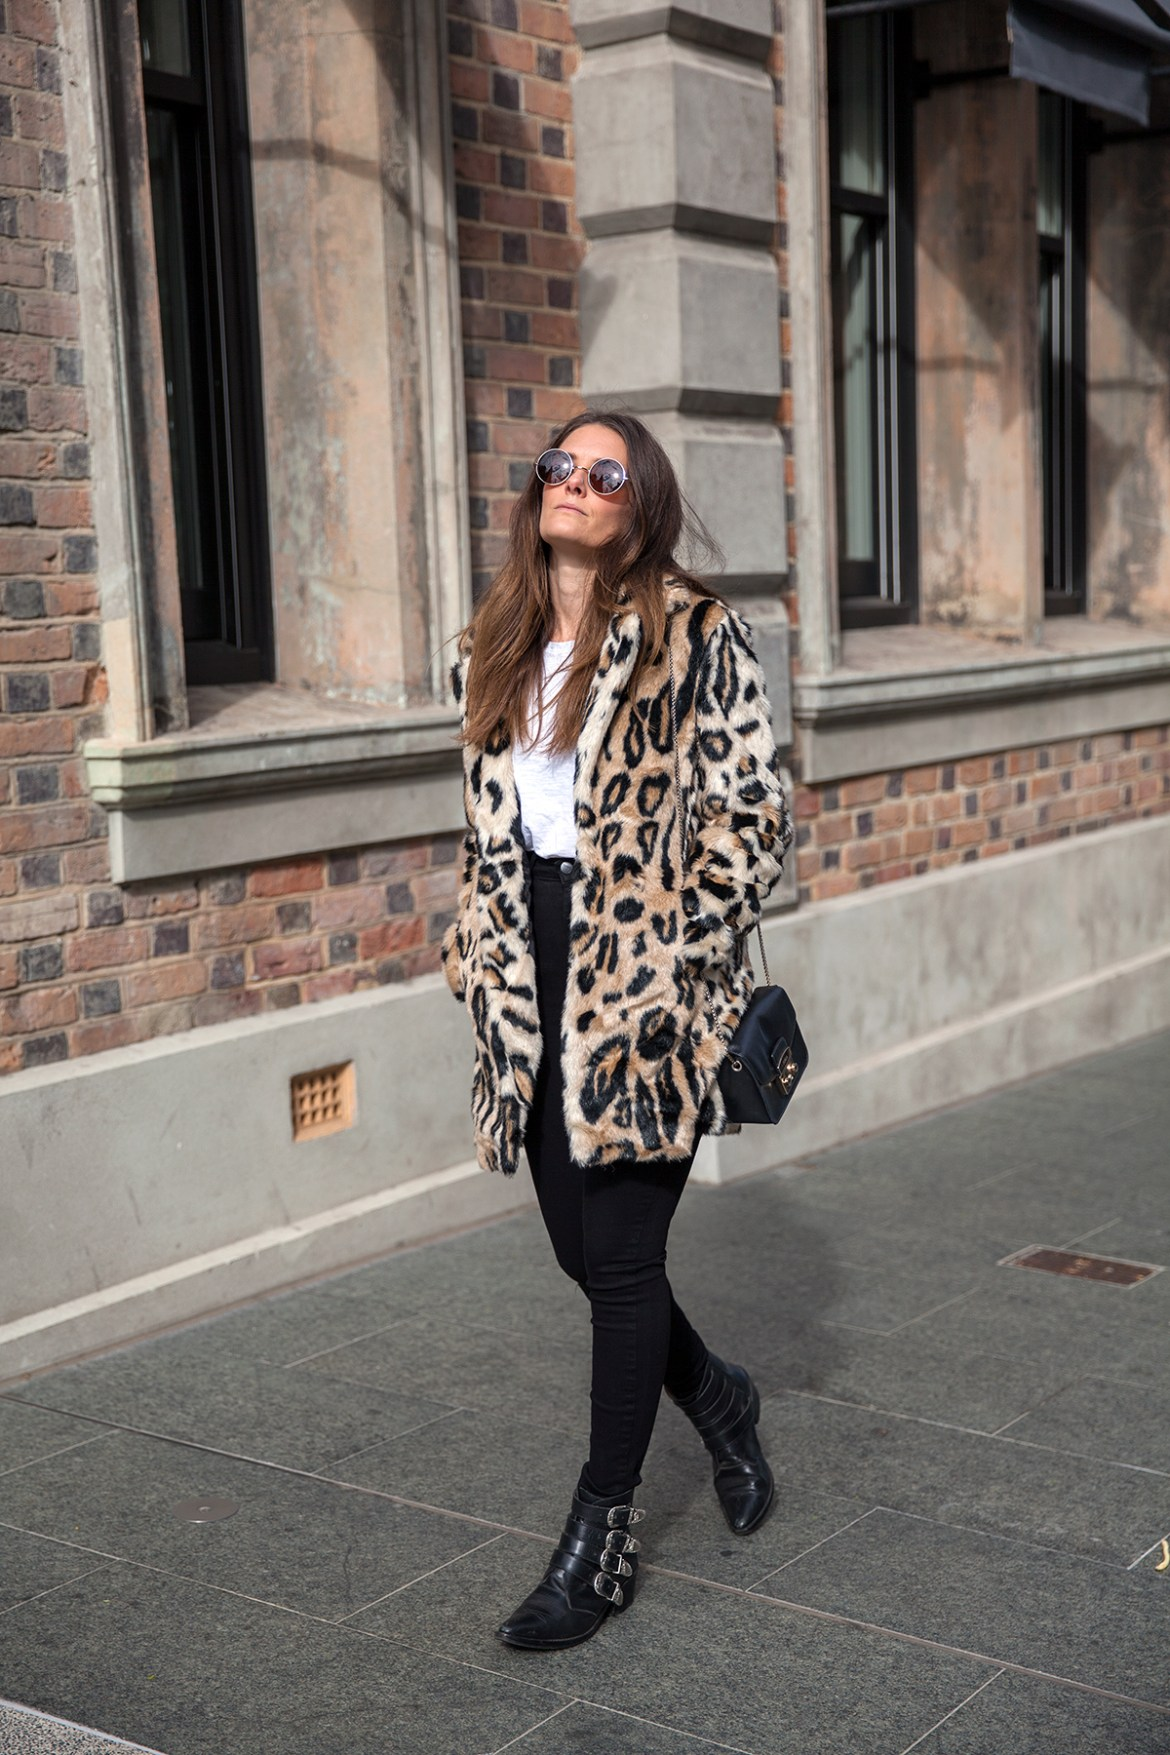 Bardot leopard fur coat worn with skinny jeans by street style blog Inspiring Wit